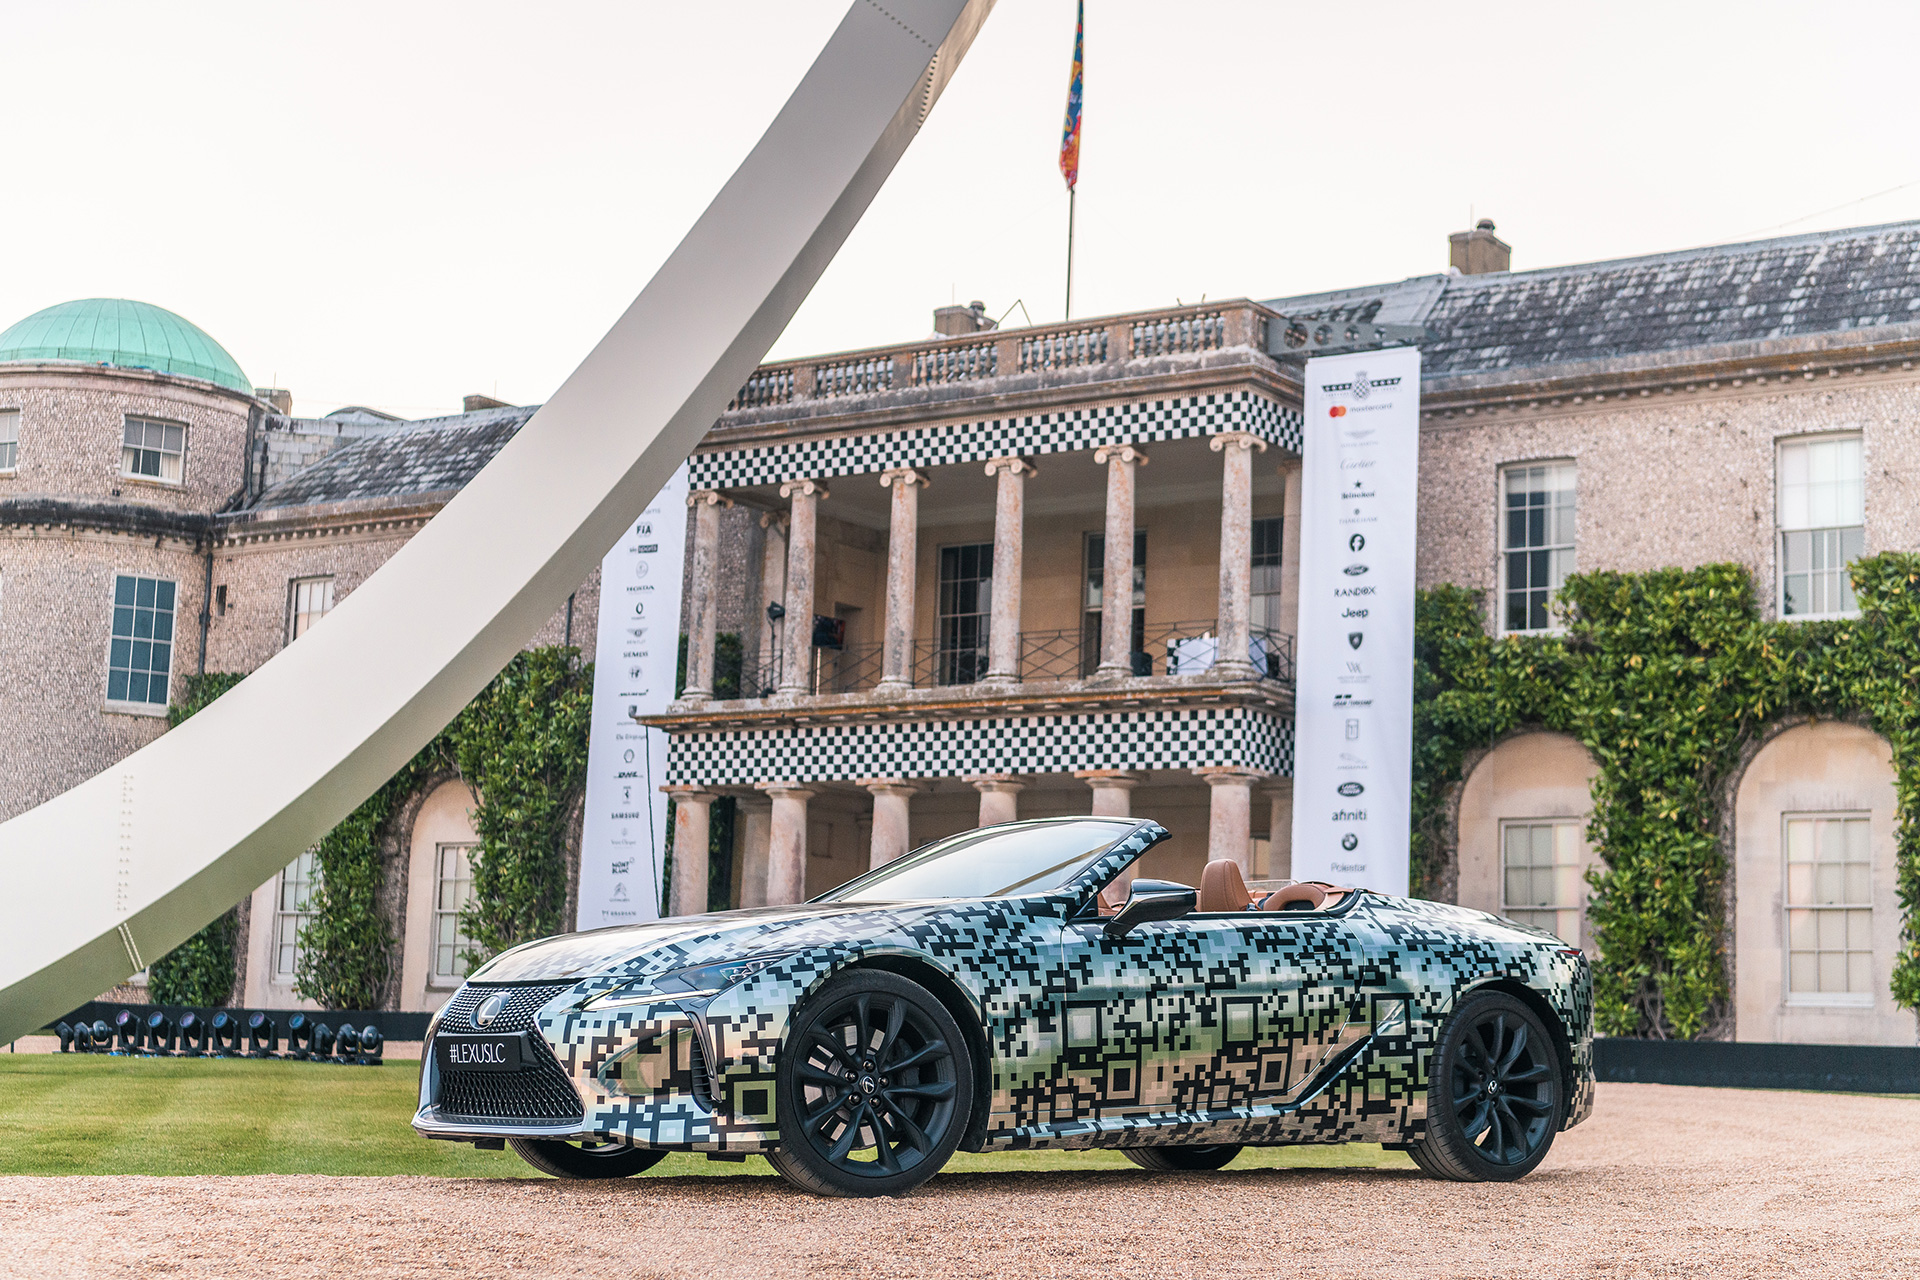 Lexus Unveils LC Convertible Prototype at Goodwood Festival of Speed - Image 3